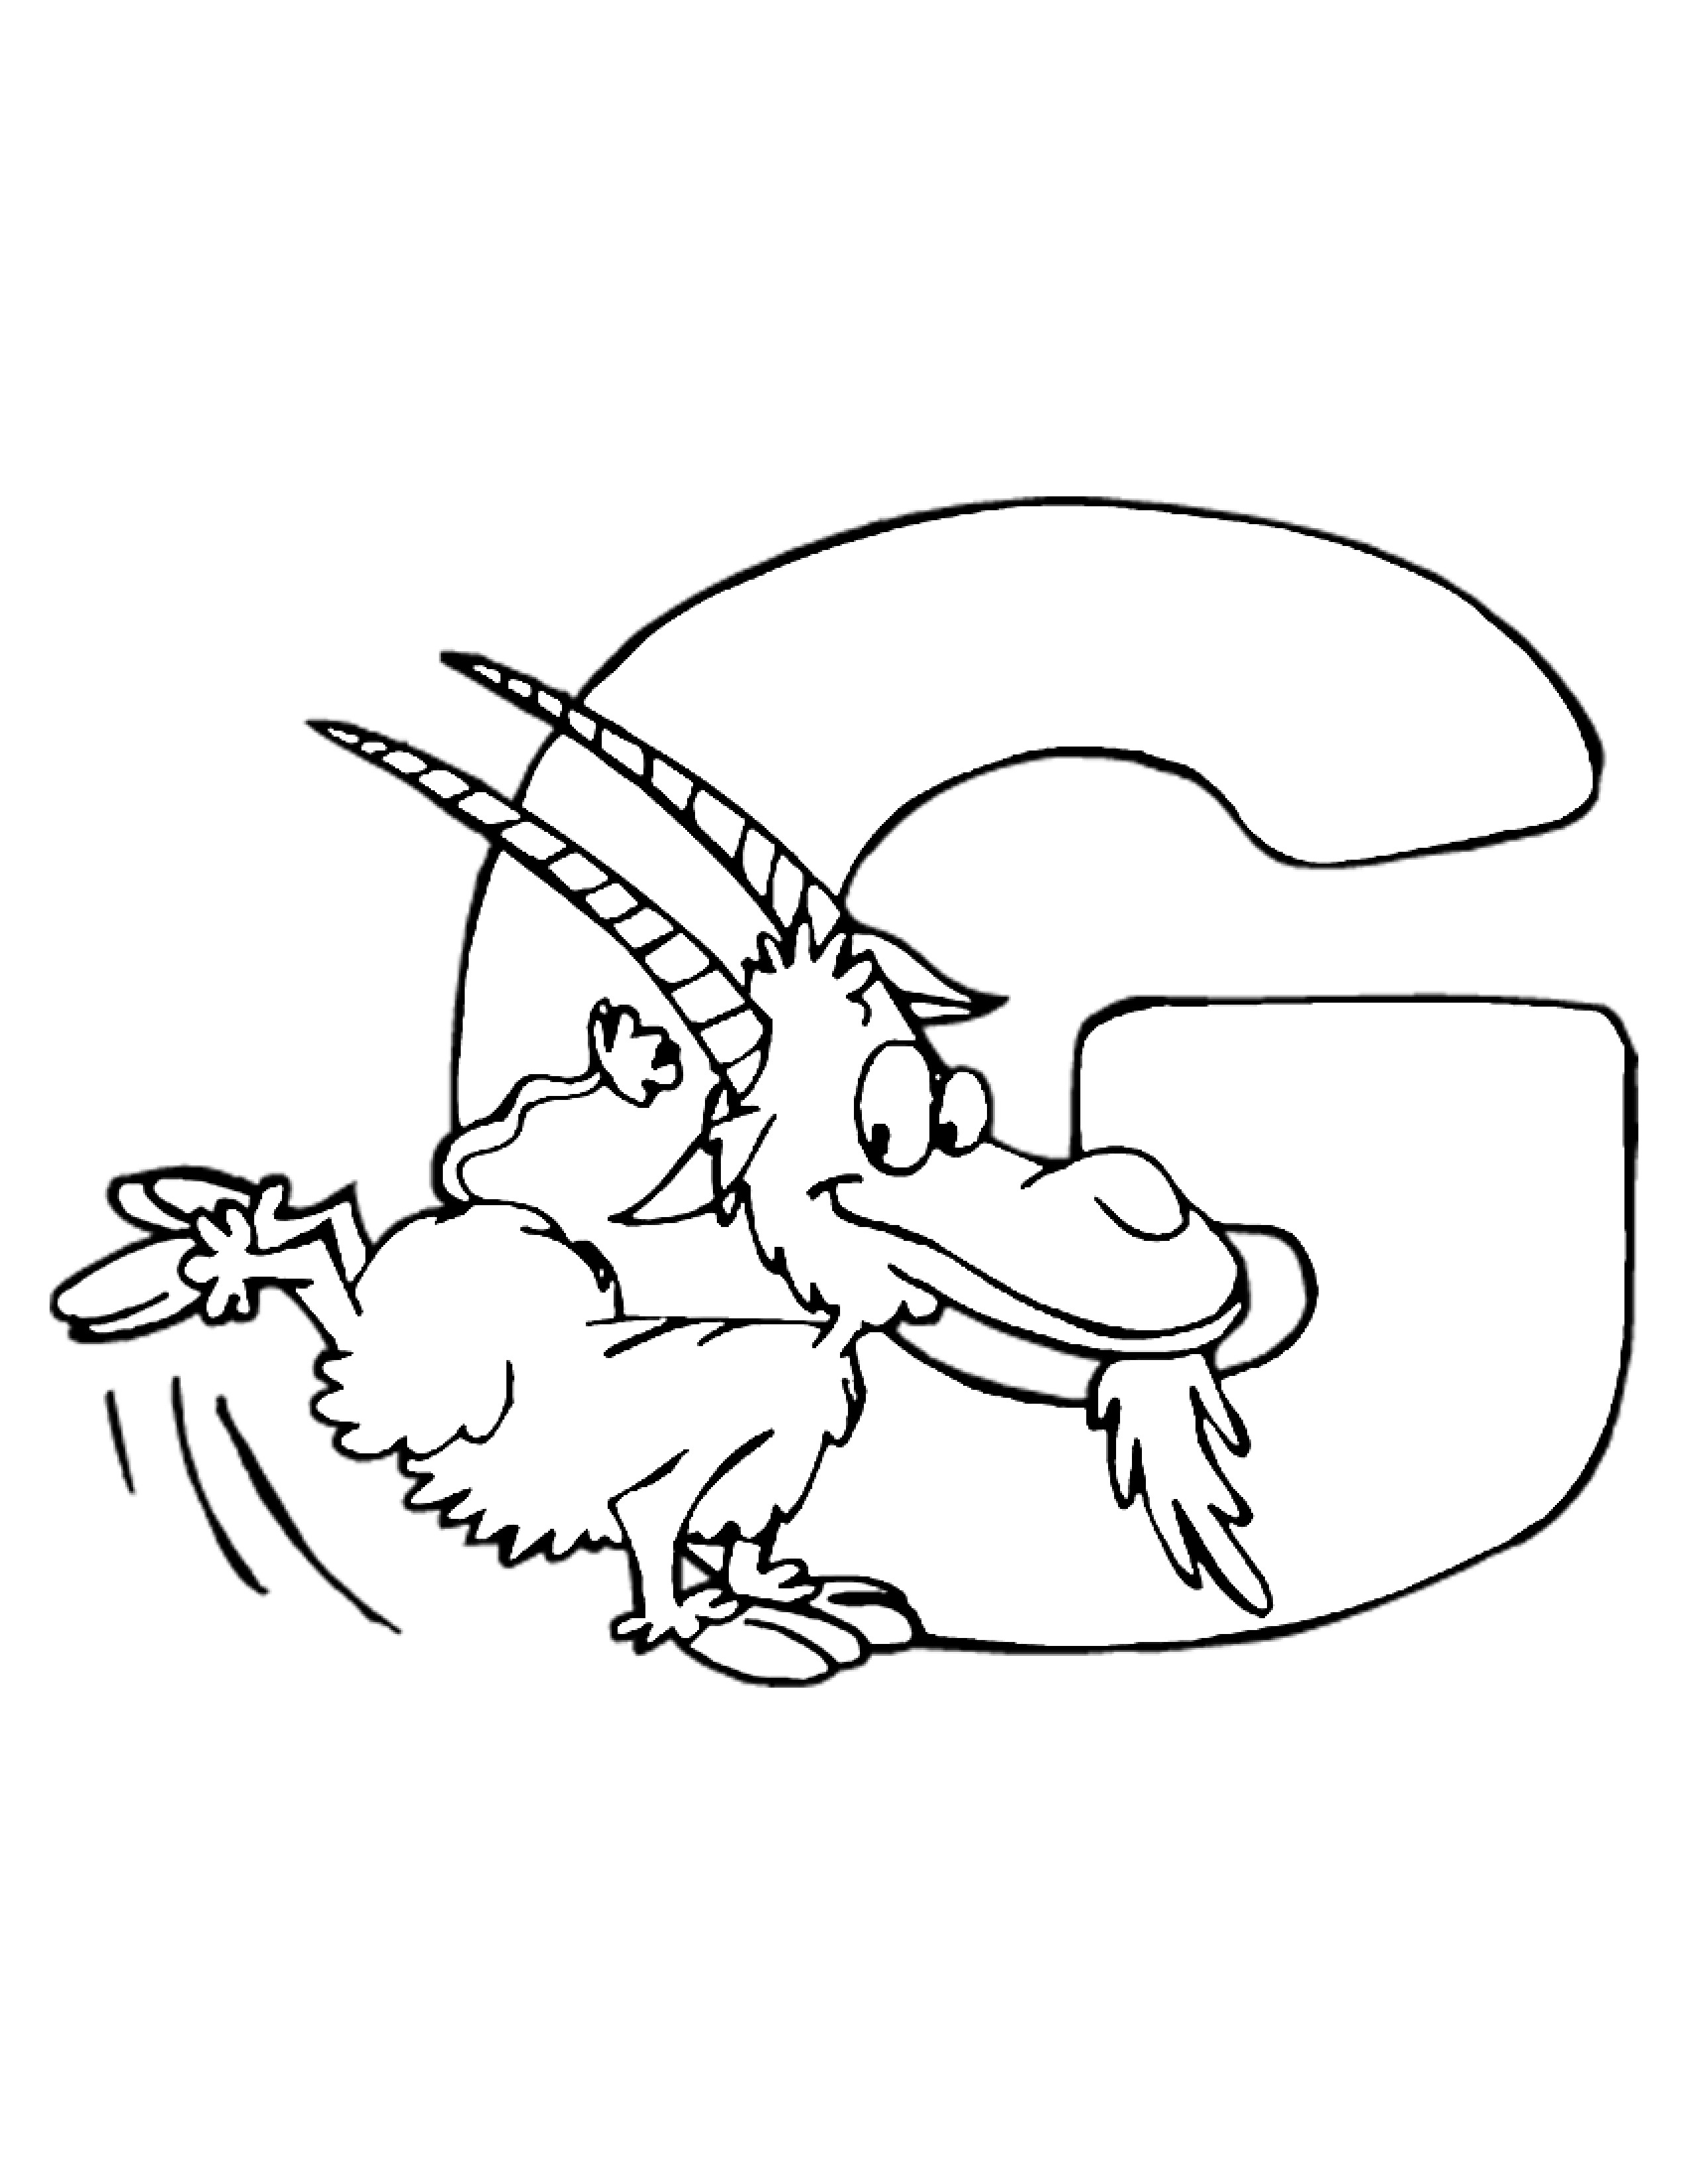 2550x3300 Animal Alphabets Coloring Pages Coloring Pages For Kids